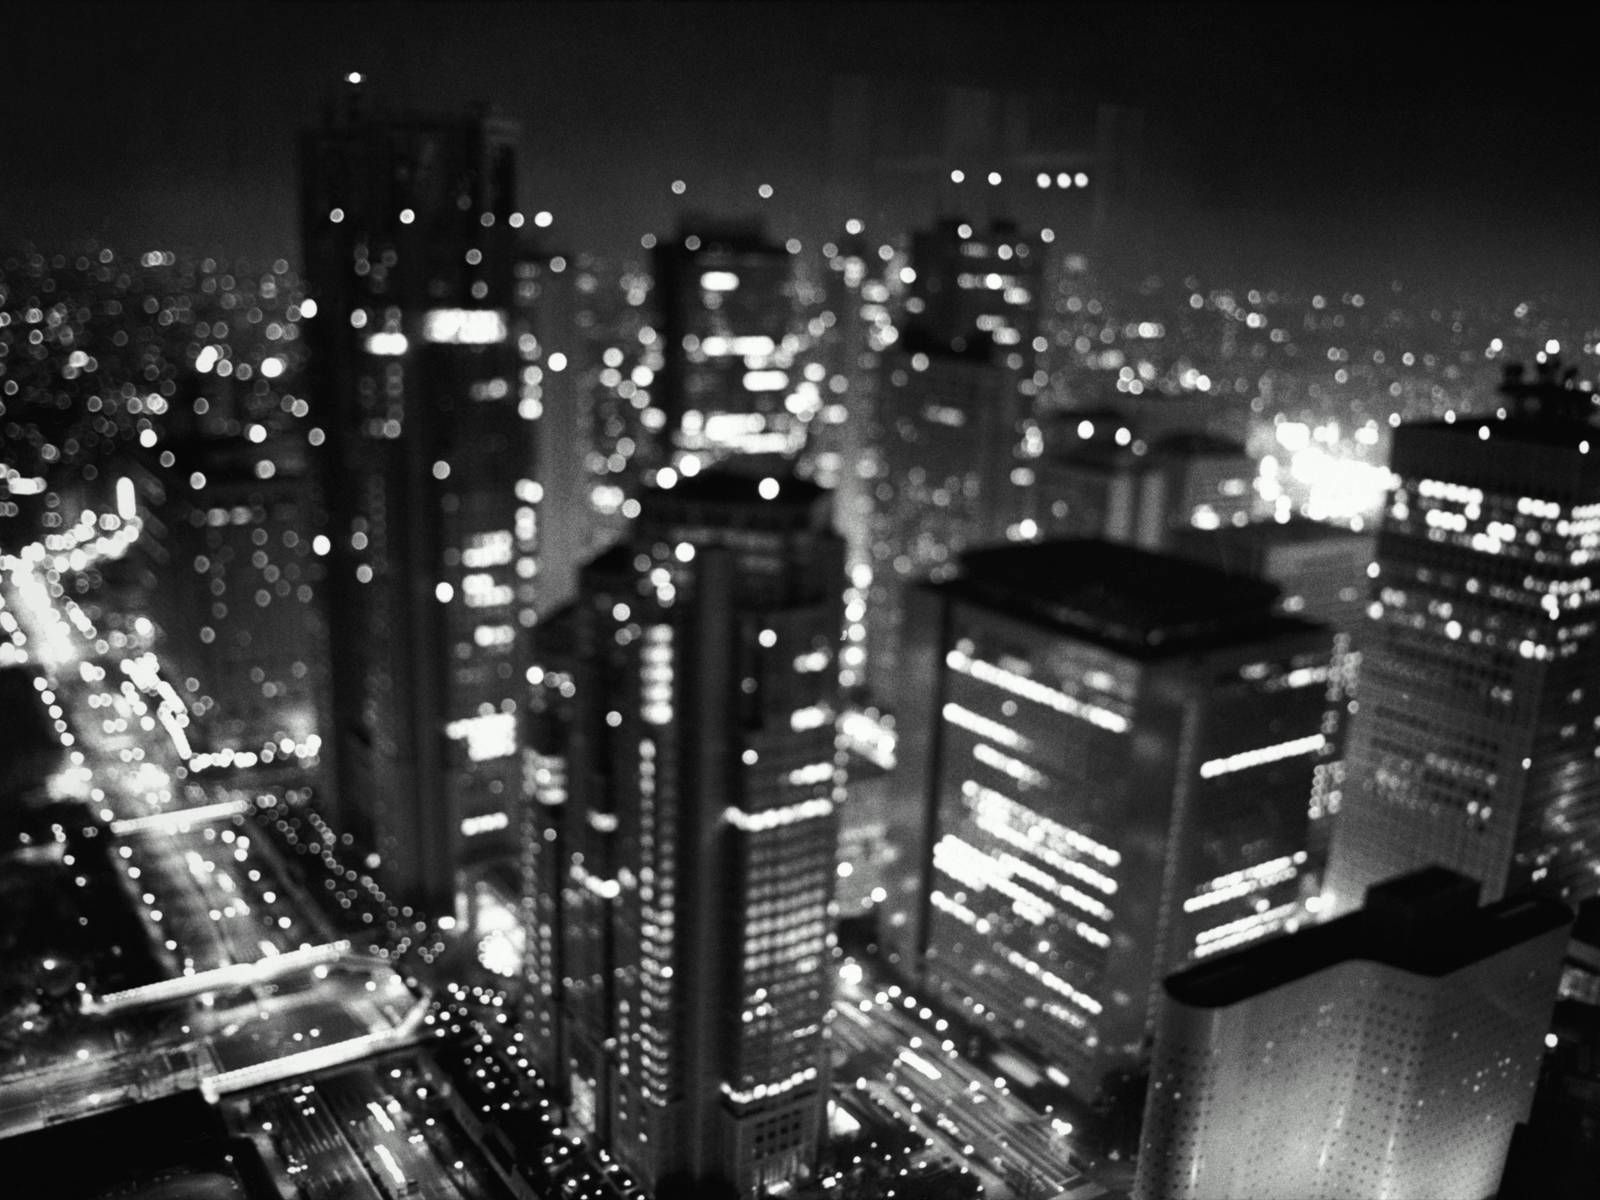 Busy Night City Wallpaper Black And White Wallpaper Black And White City